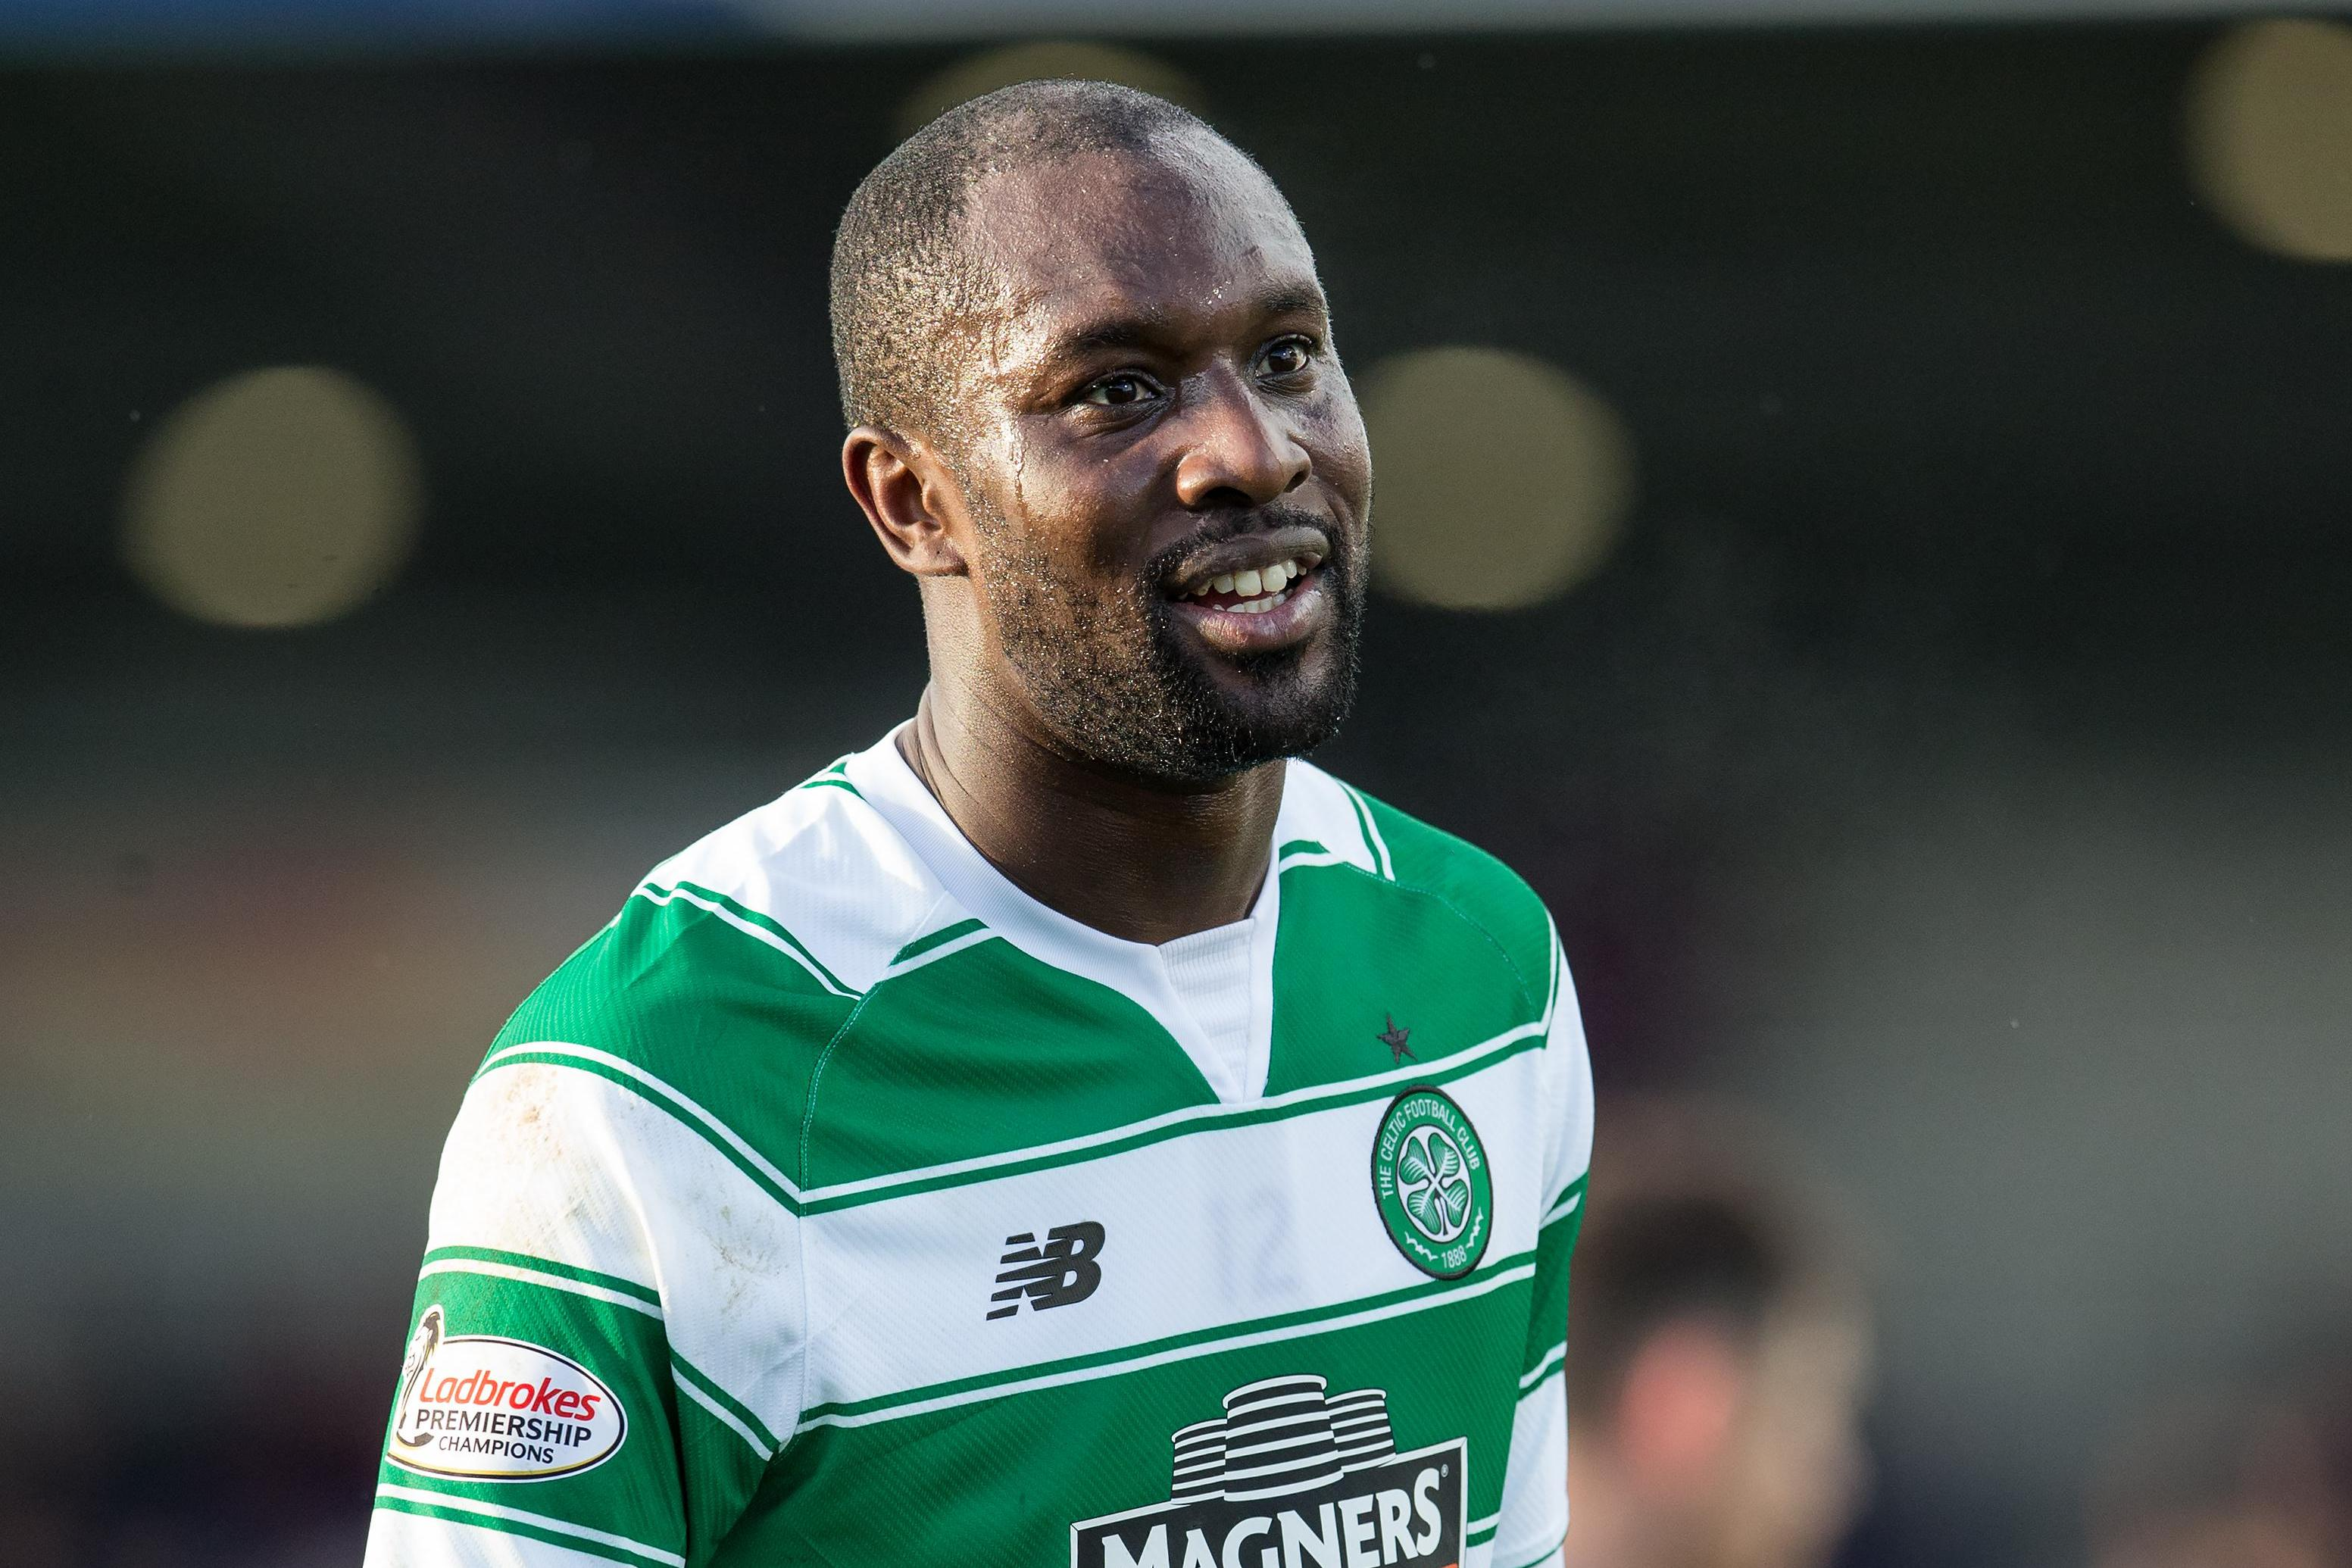 Celtic flop Carlton Cole joins ex Chelsea star Michael Essien at